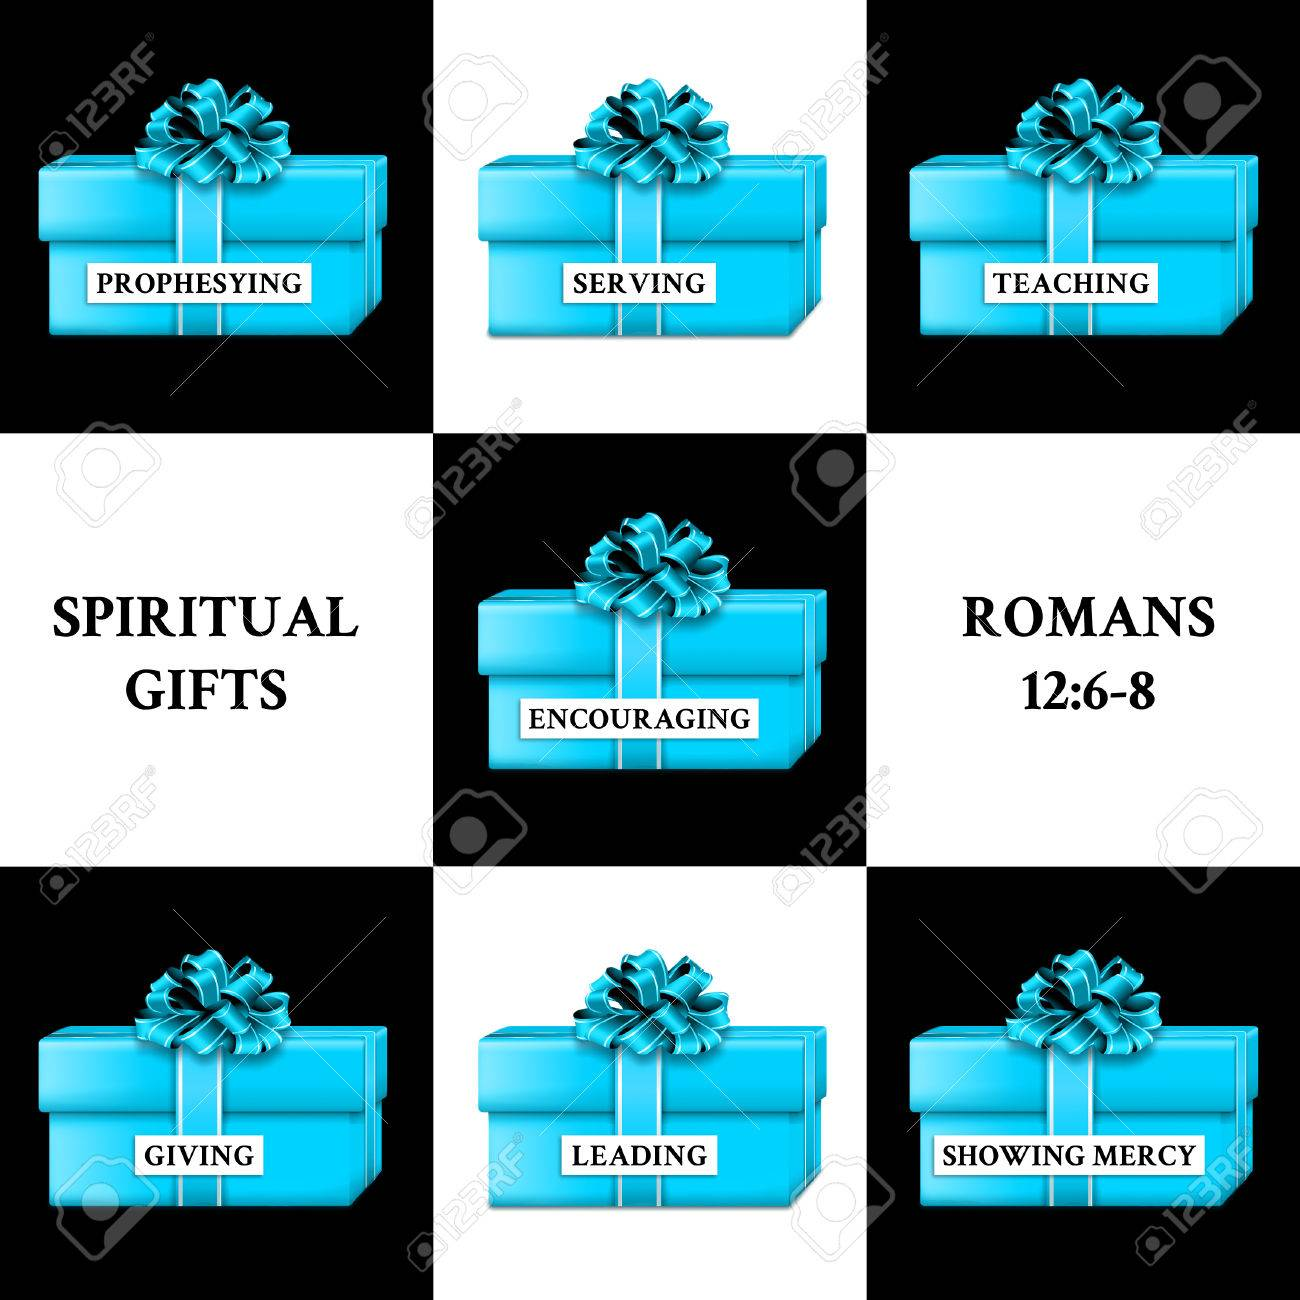 Gifts representing the gifts of the Holy Spirit. - 83406358